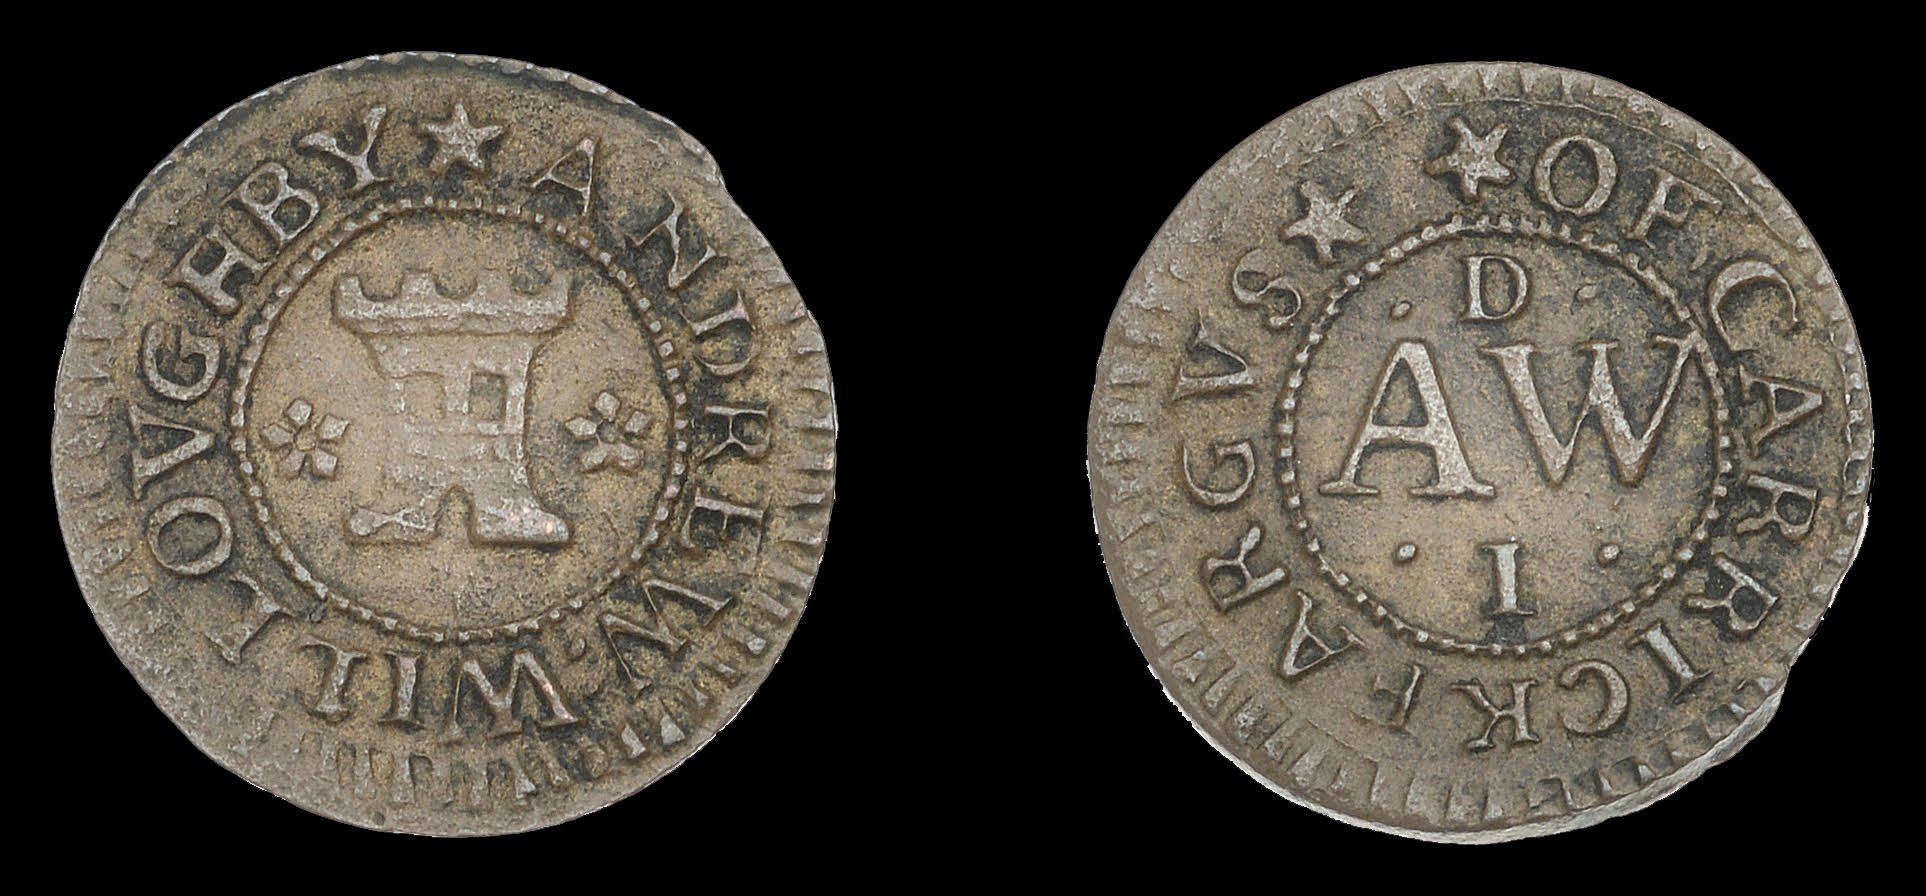 Rare penny struck in Northern Ireland breaks auction records